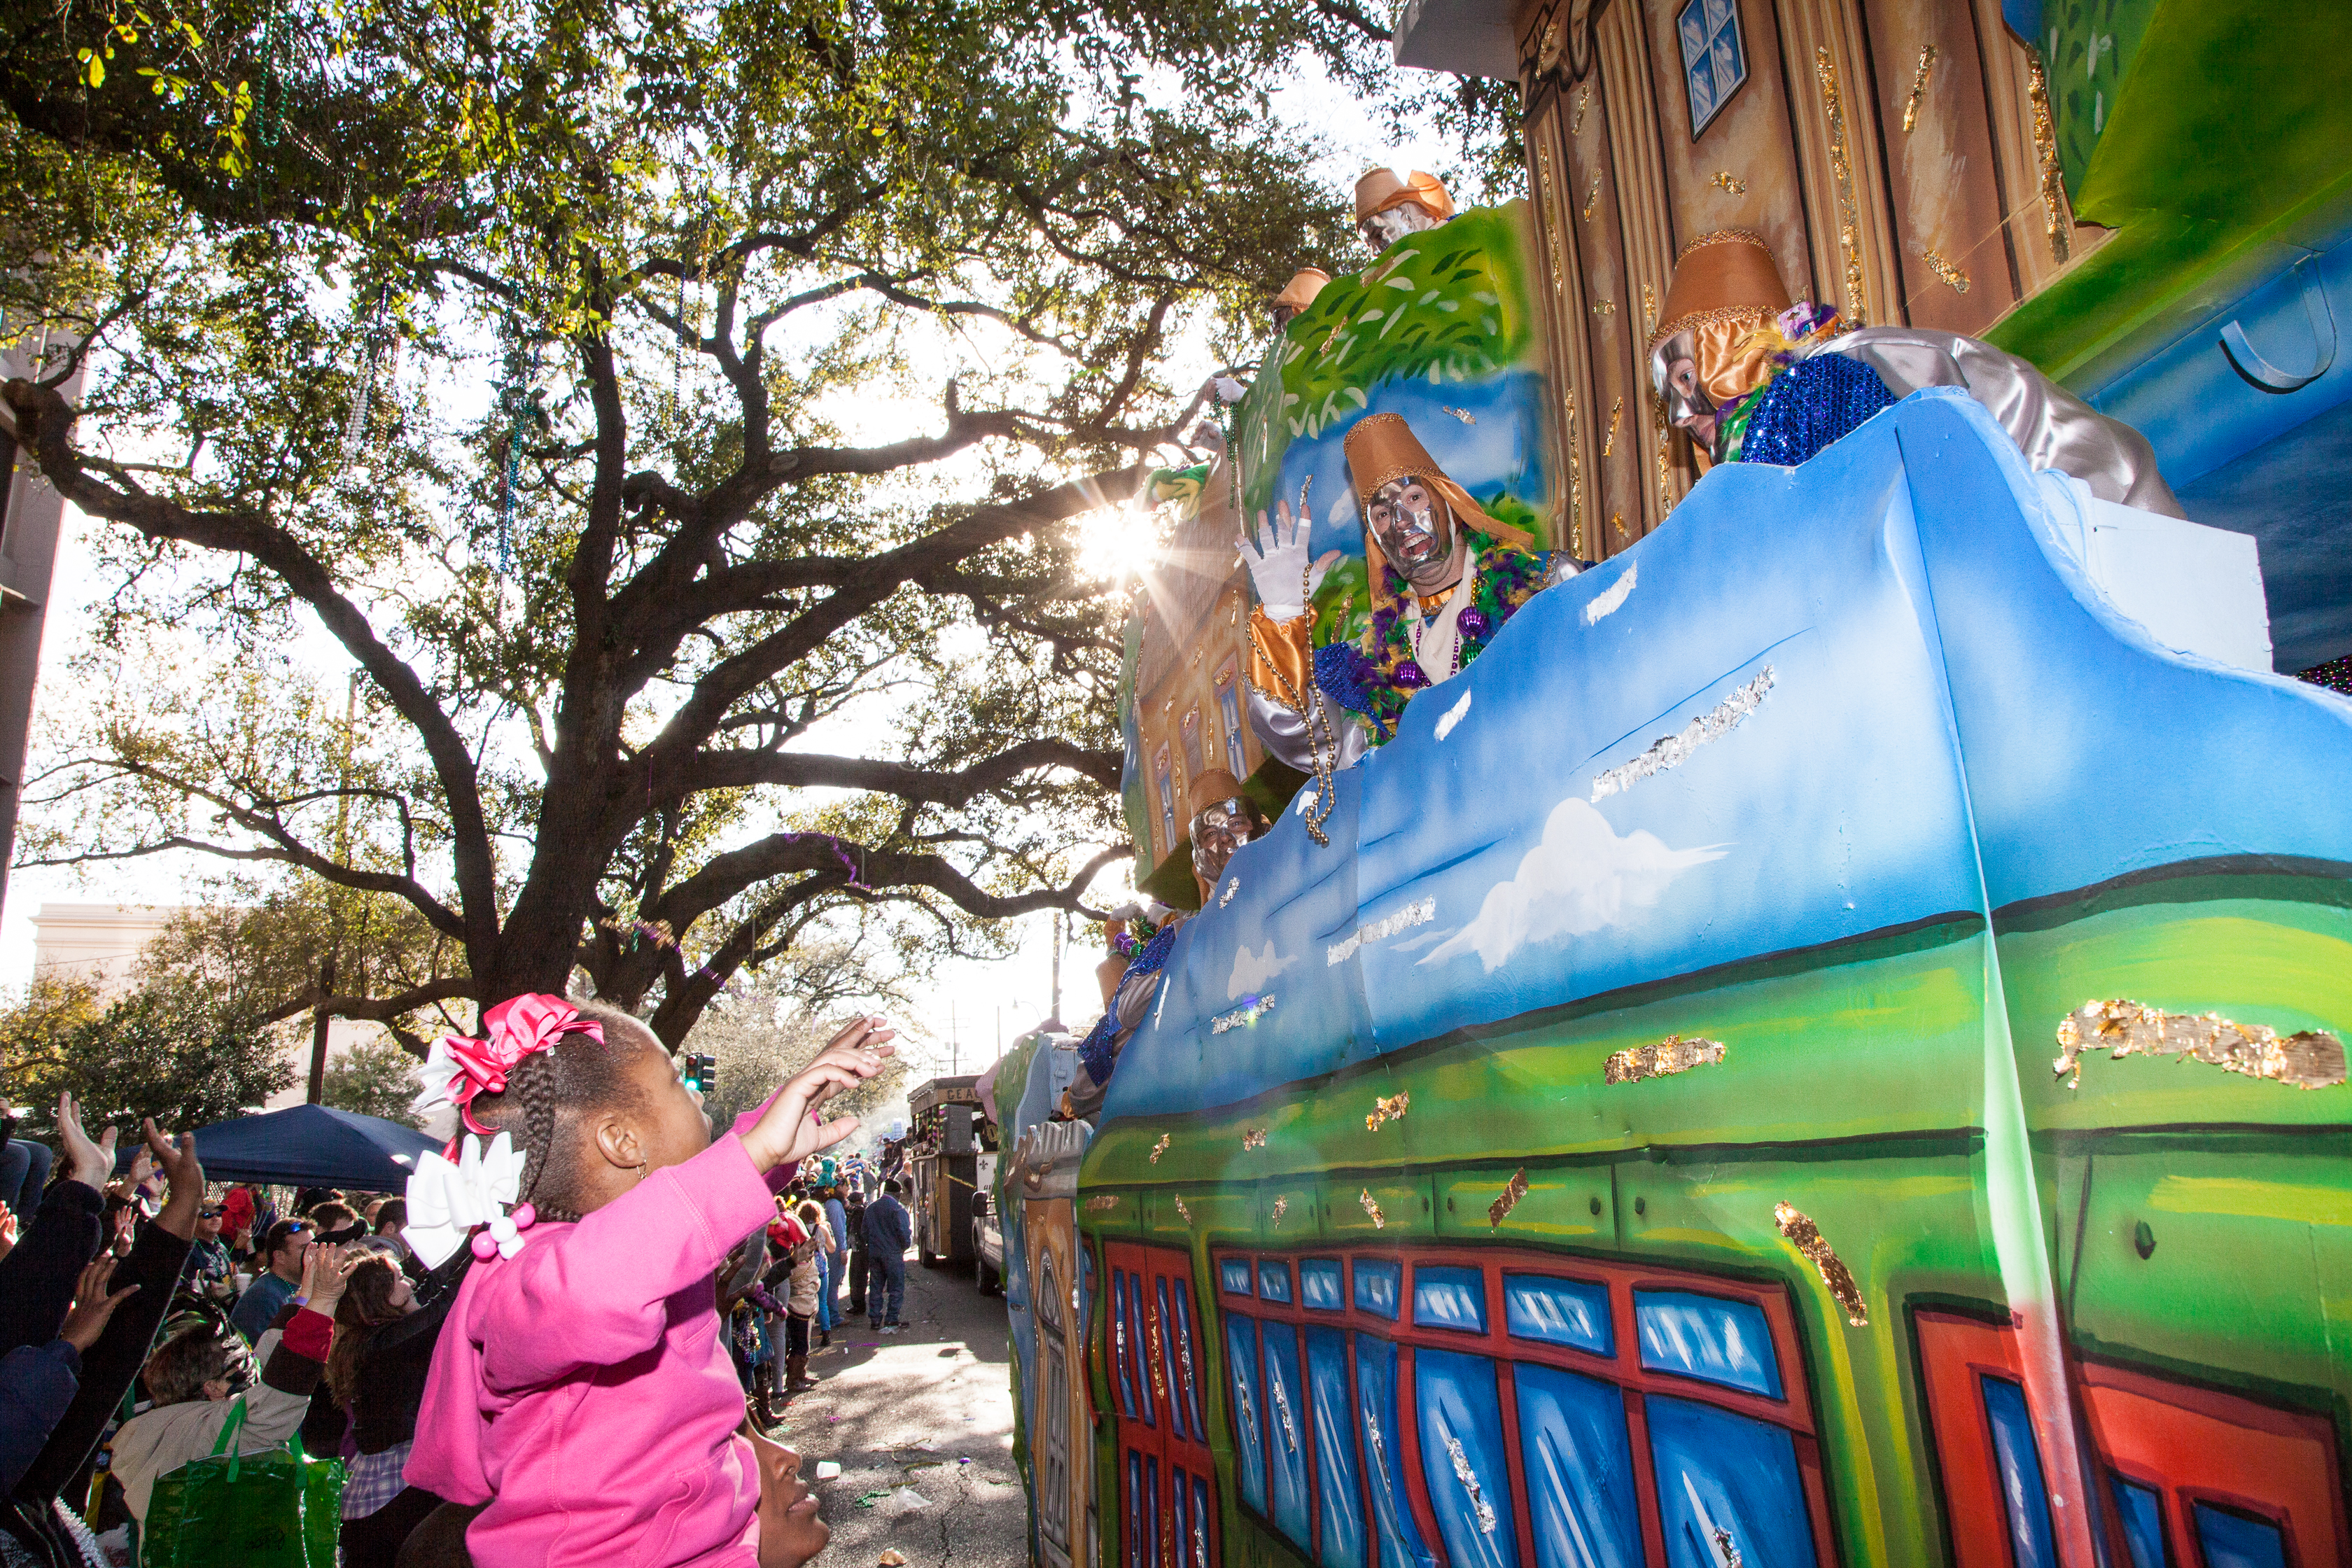 new orleans family activities